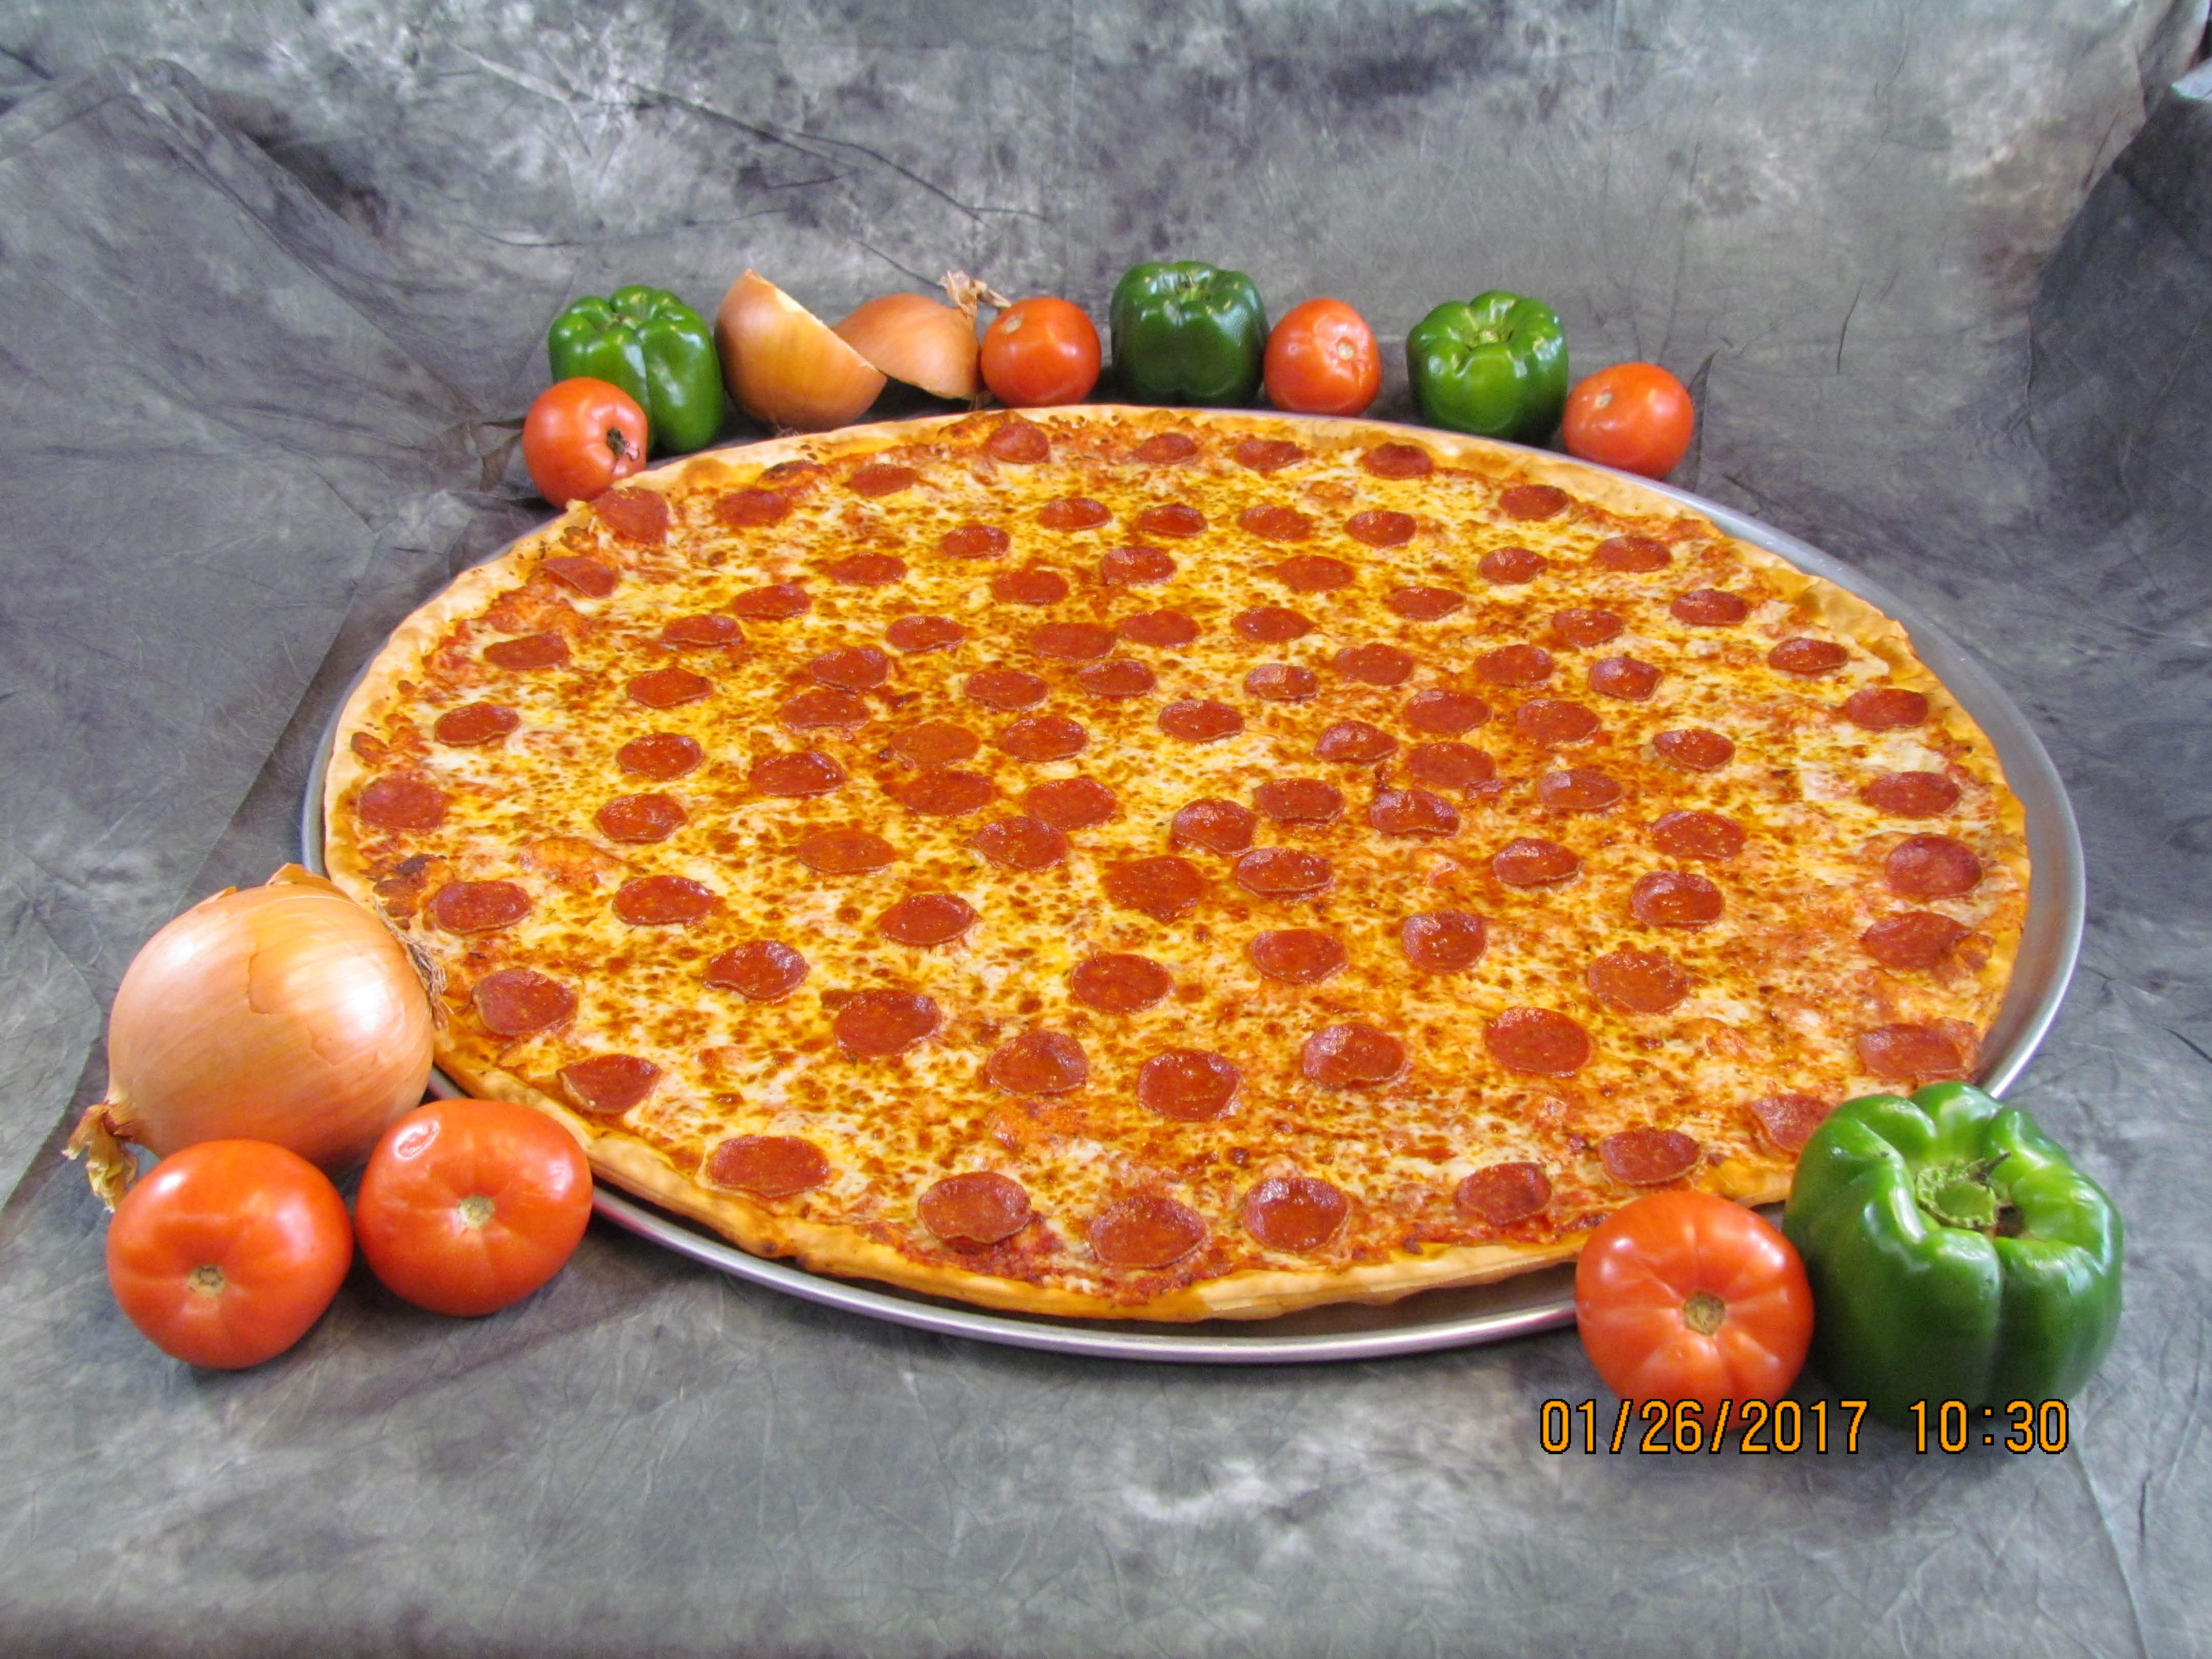 Delicious Luigi's Pizza served at your next family event